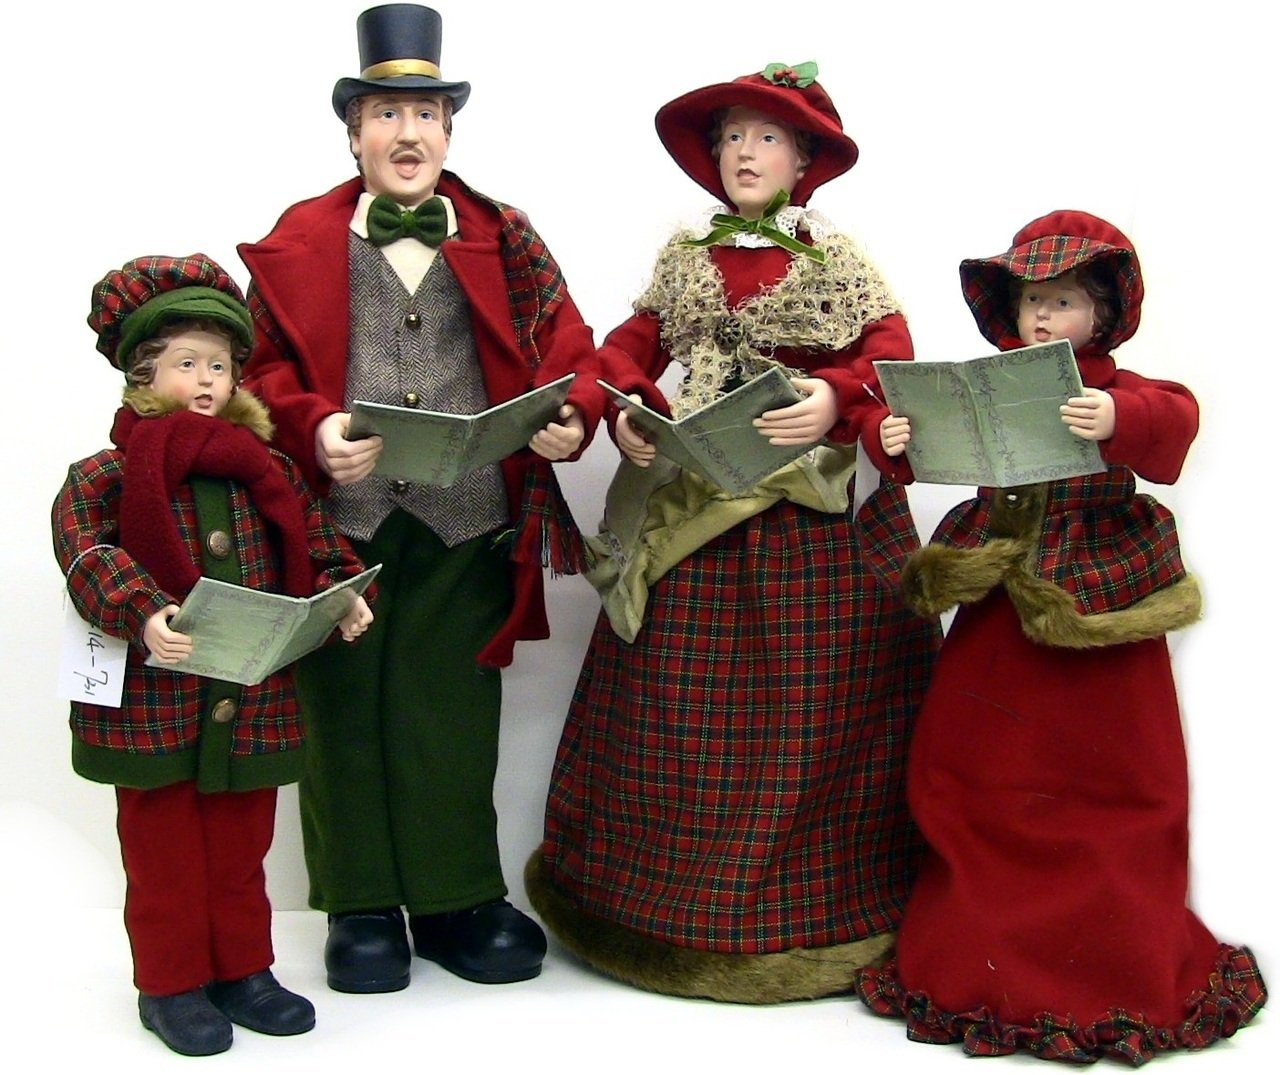 Christmas Holiday Collectible Figurines Fabric Caroler Family Set of 4 Pcs